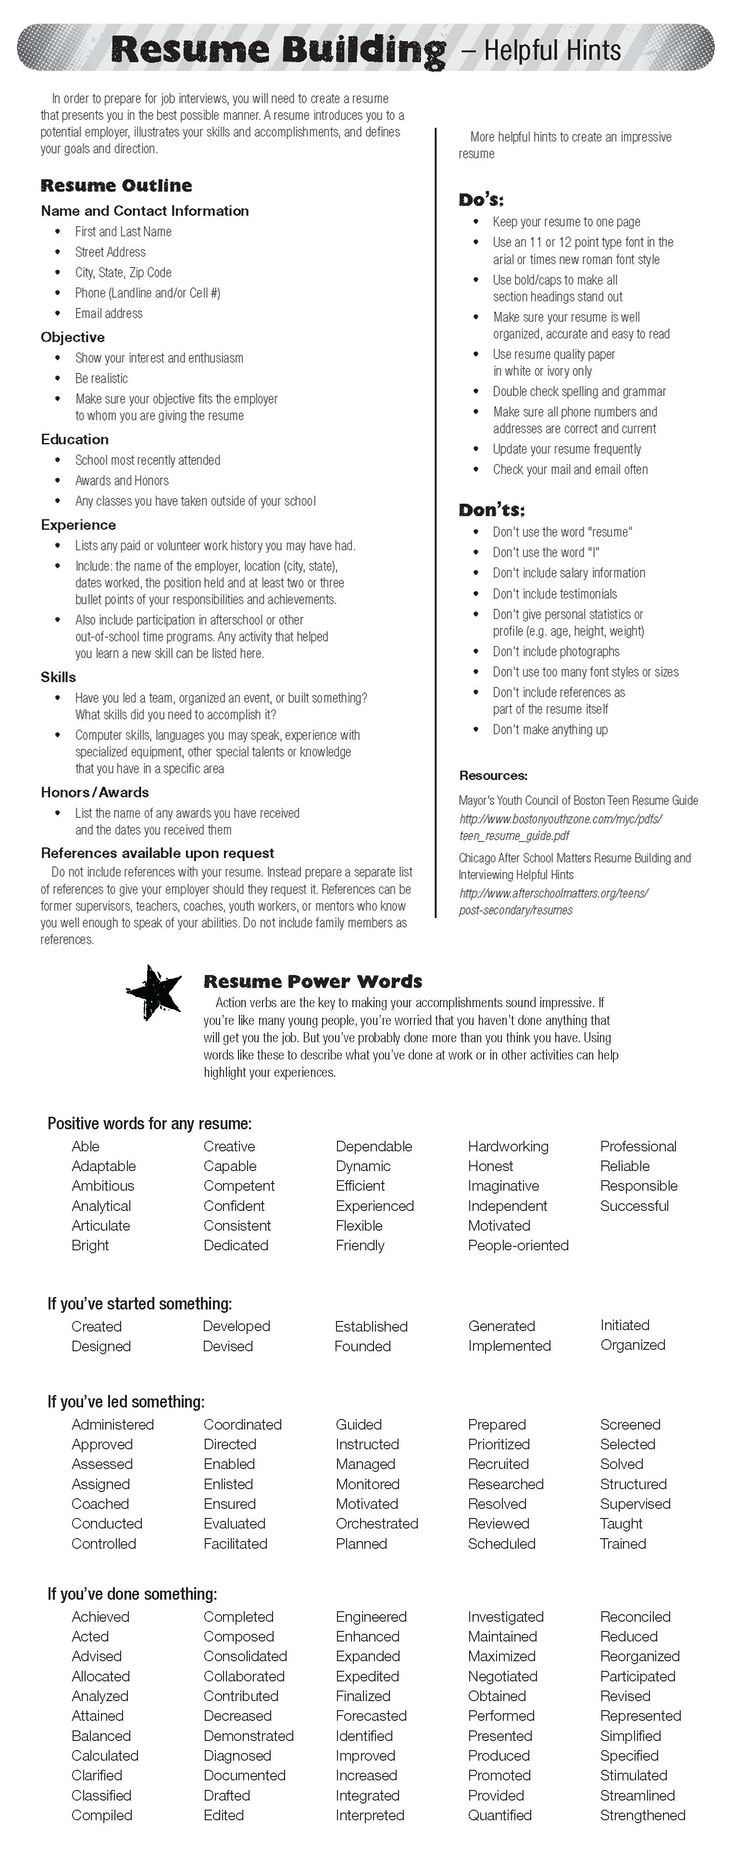 Opposenewapstandardsus  Unique  Ideas About Resume On Pinterest  Cv Format Resume  With Extraordinary Check Out Todays Resume Building Tips Resume Resumepowerwords With Cute Executive Chef Resume Also Graduate School Resume Template In Addition New Teacher Resume And High School On Resume As Well As Resume Examples Free Additionally Good Skills To List On A Resume From Pinterestcom With Opposenewapstandardsus  Extraordinary  Ideas About Resume On Pinterest  Cv Format Resume  With Cute Check Out Todays Resume Building Tips Resume Resumepowerwords And Unique Executive Chef Resume Also Graduate School Resume Template In Addition New Teacher Resume From Pinterestcom